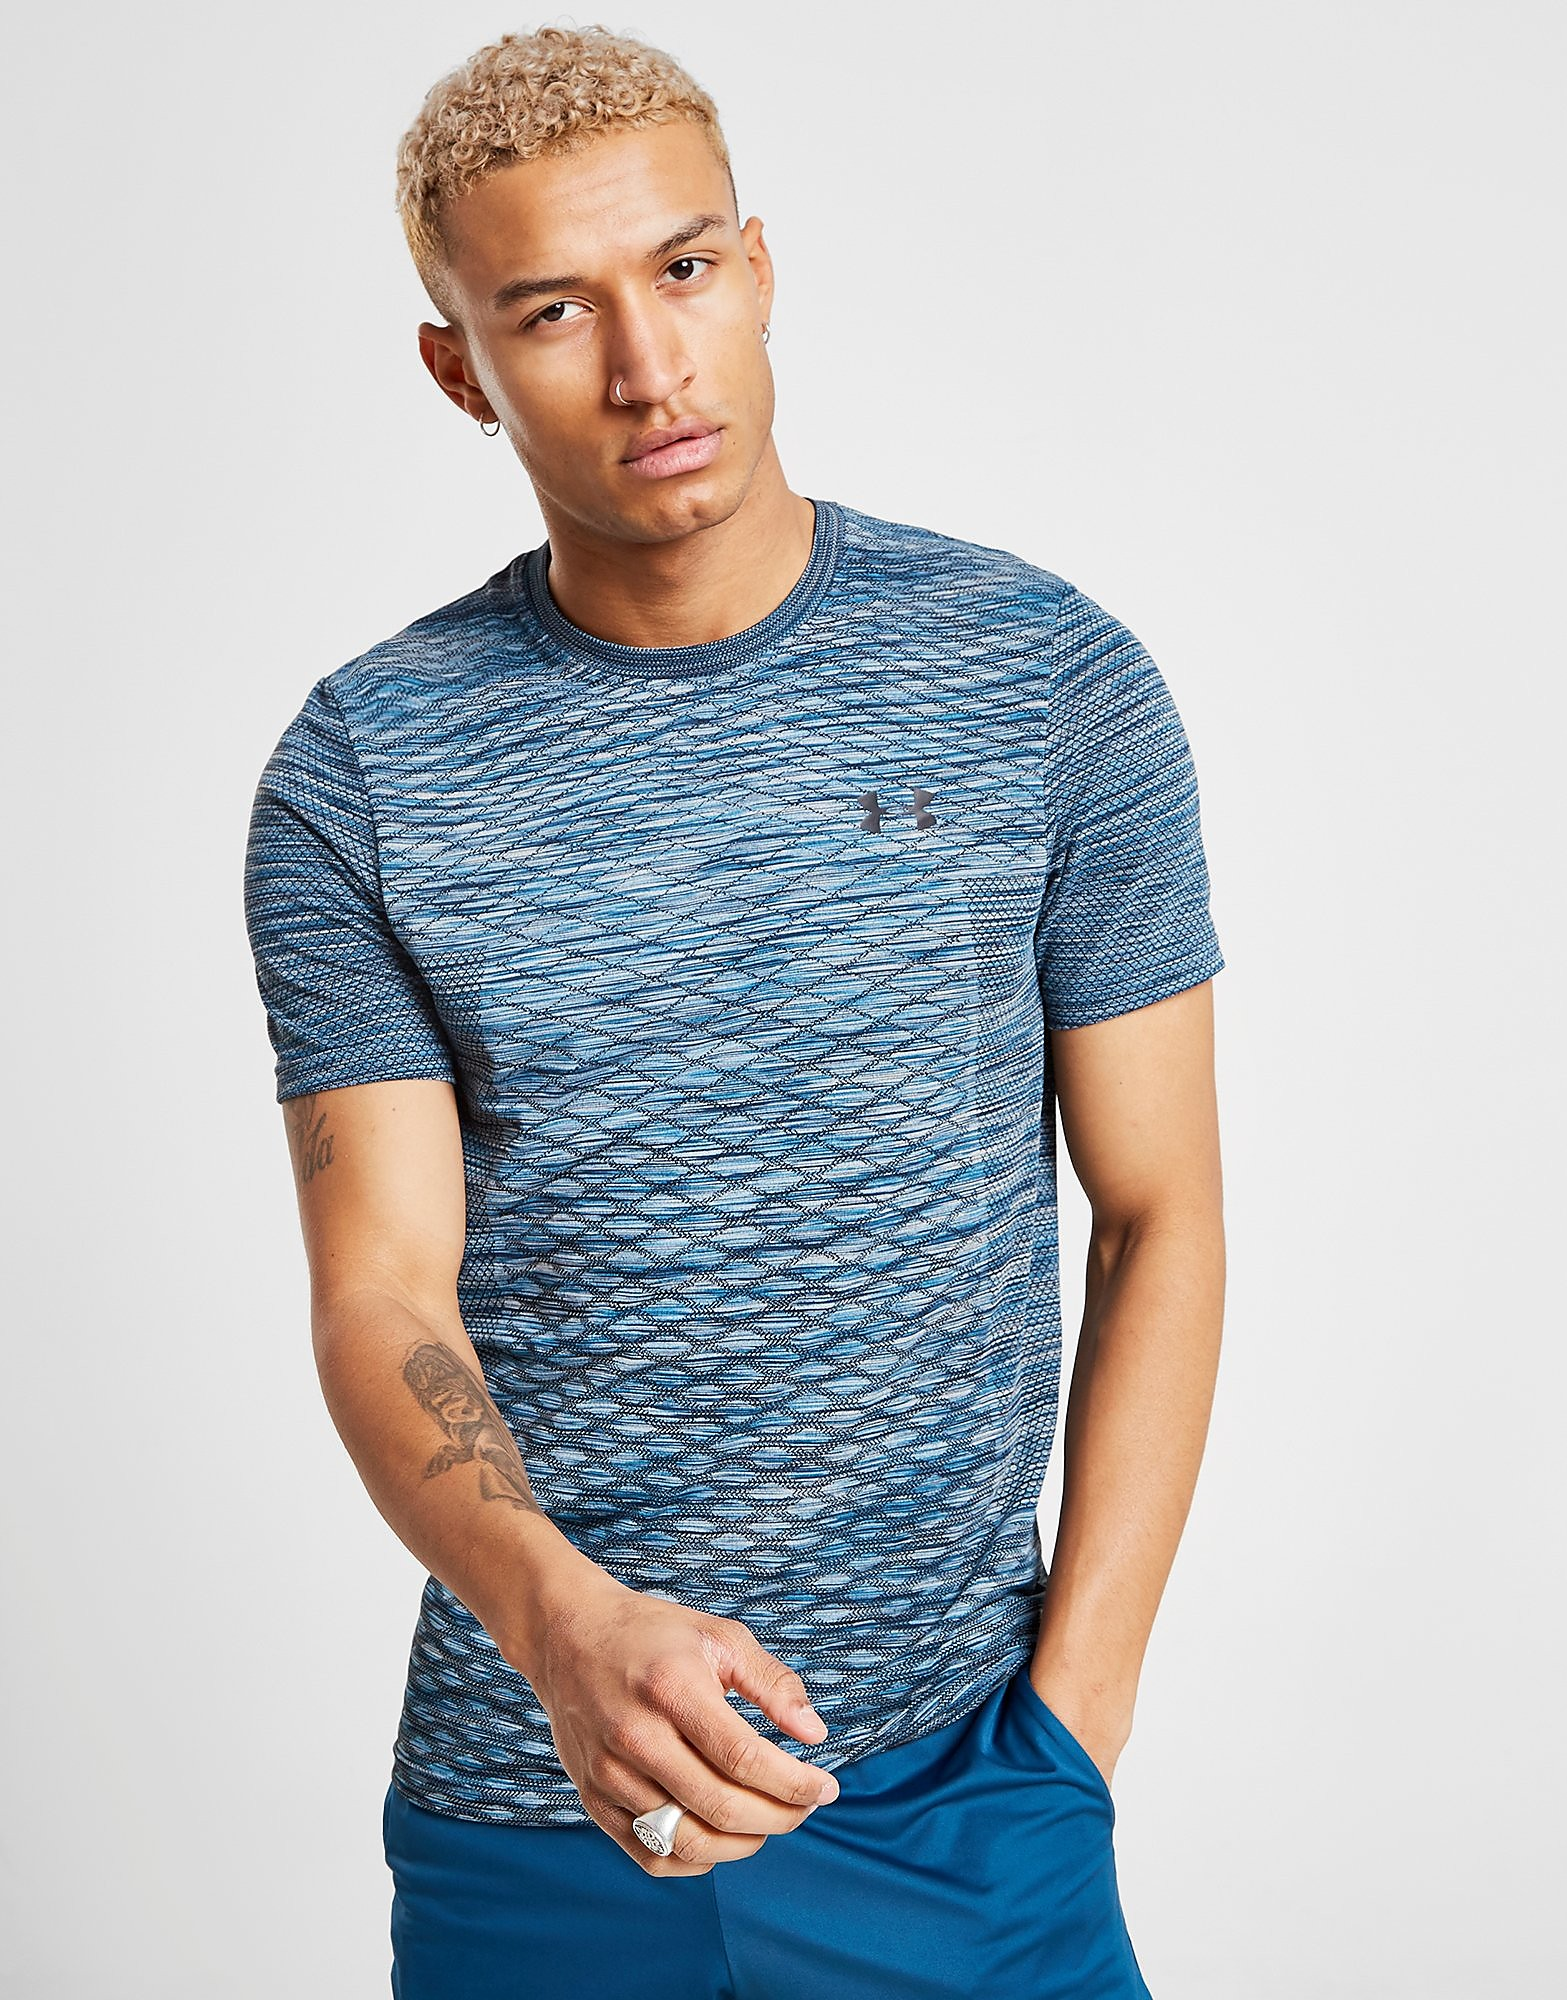 Under Armour Vanish Novelty Graphic T-Shirt